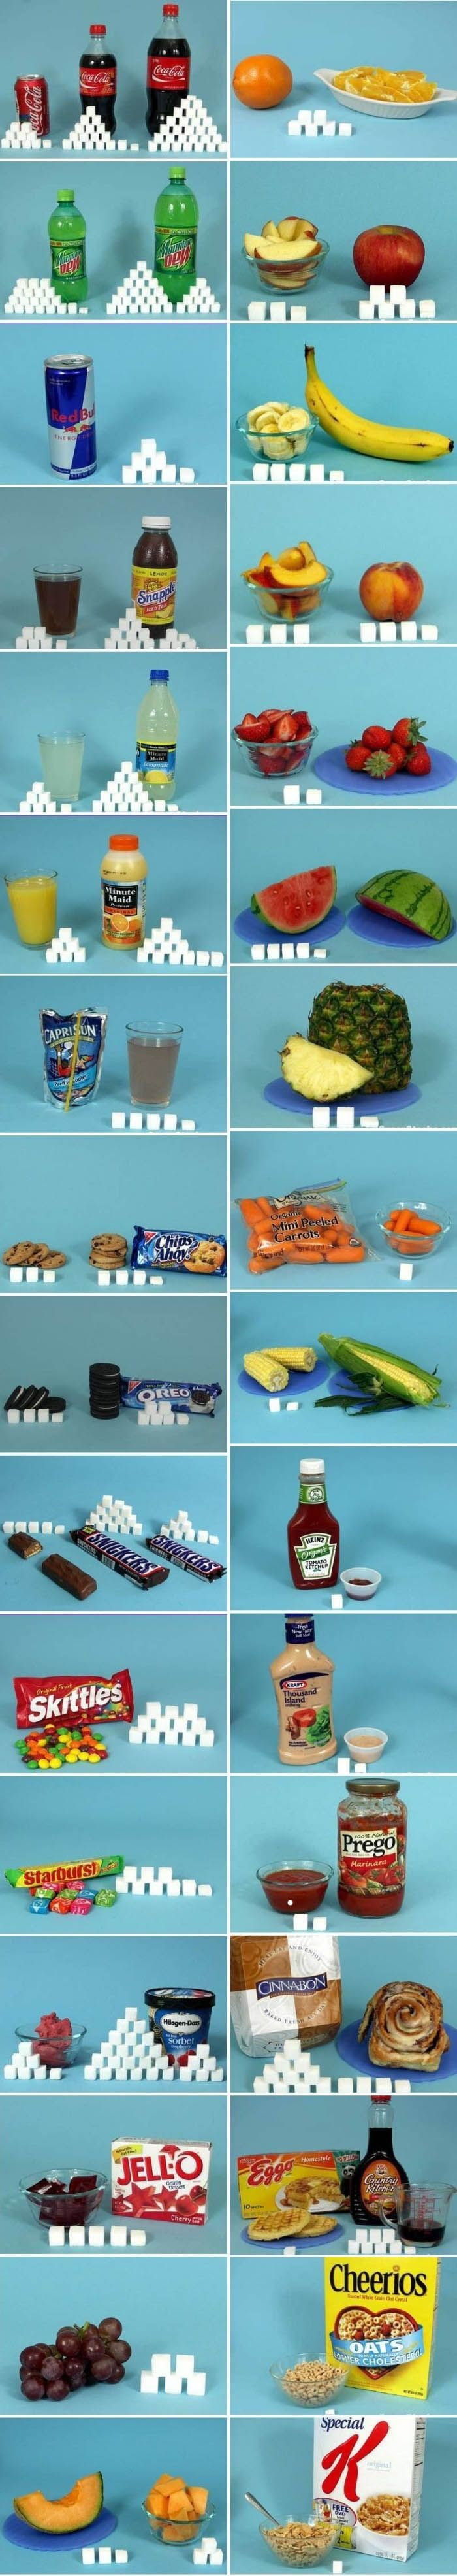 Make lines out of the sugar.  How much sugar in each item.